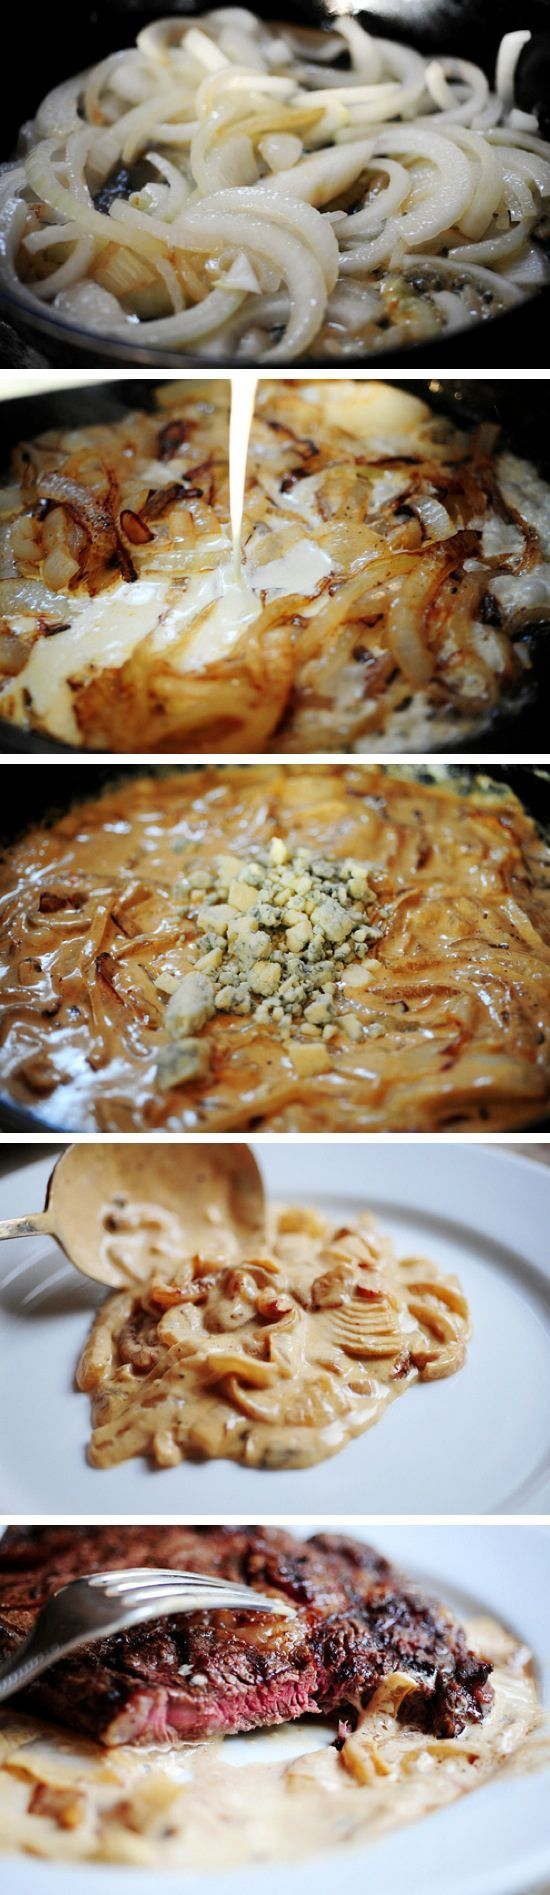 Grilled Steak with Onion-Blue Cheese Sauce | Recipe By Photo